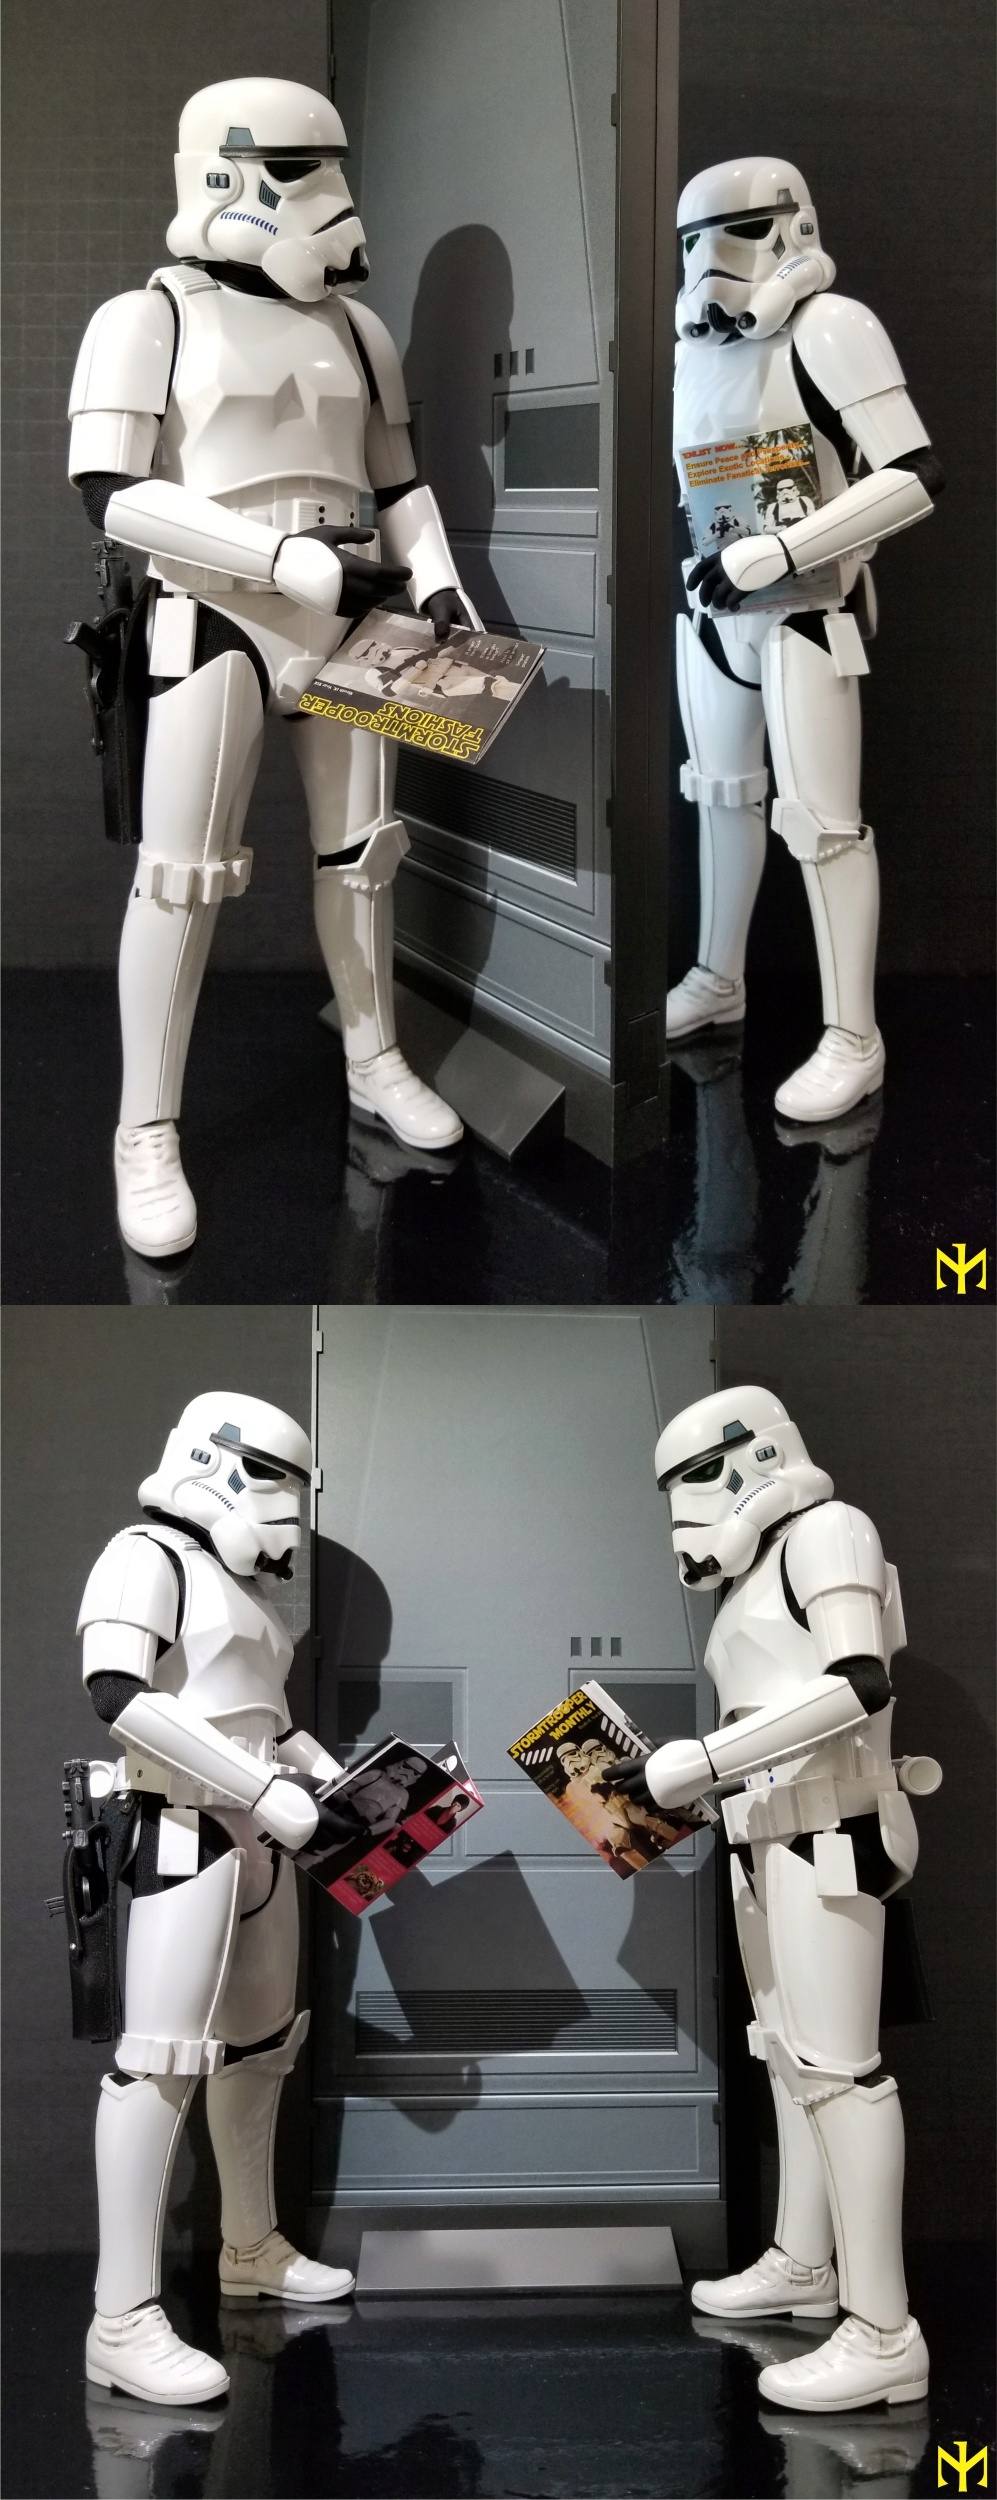 military - STAR WARS Return of the Jedi Stormtrooper by Hot Toys review (updated with Part II - Deluxe) Htrjsd14